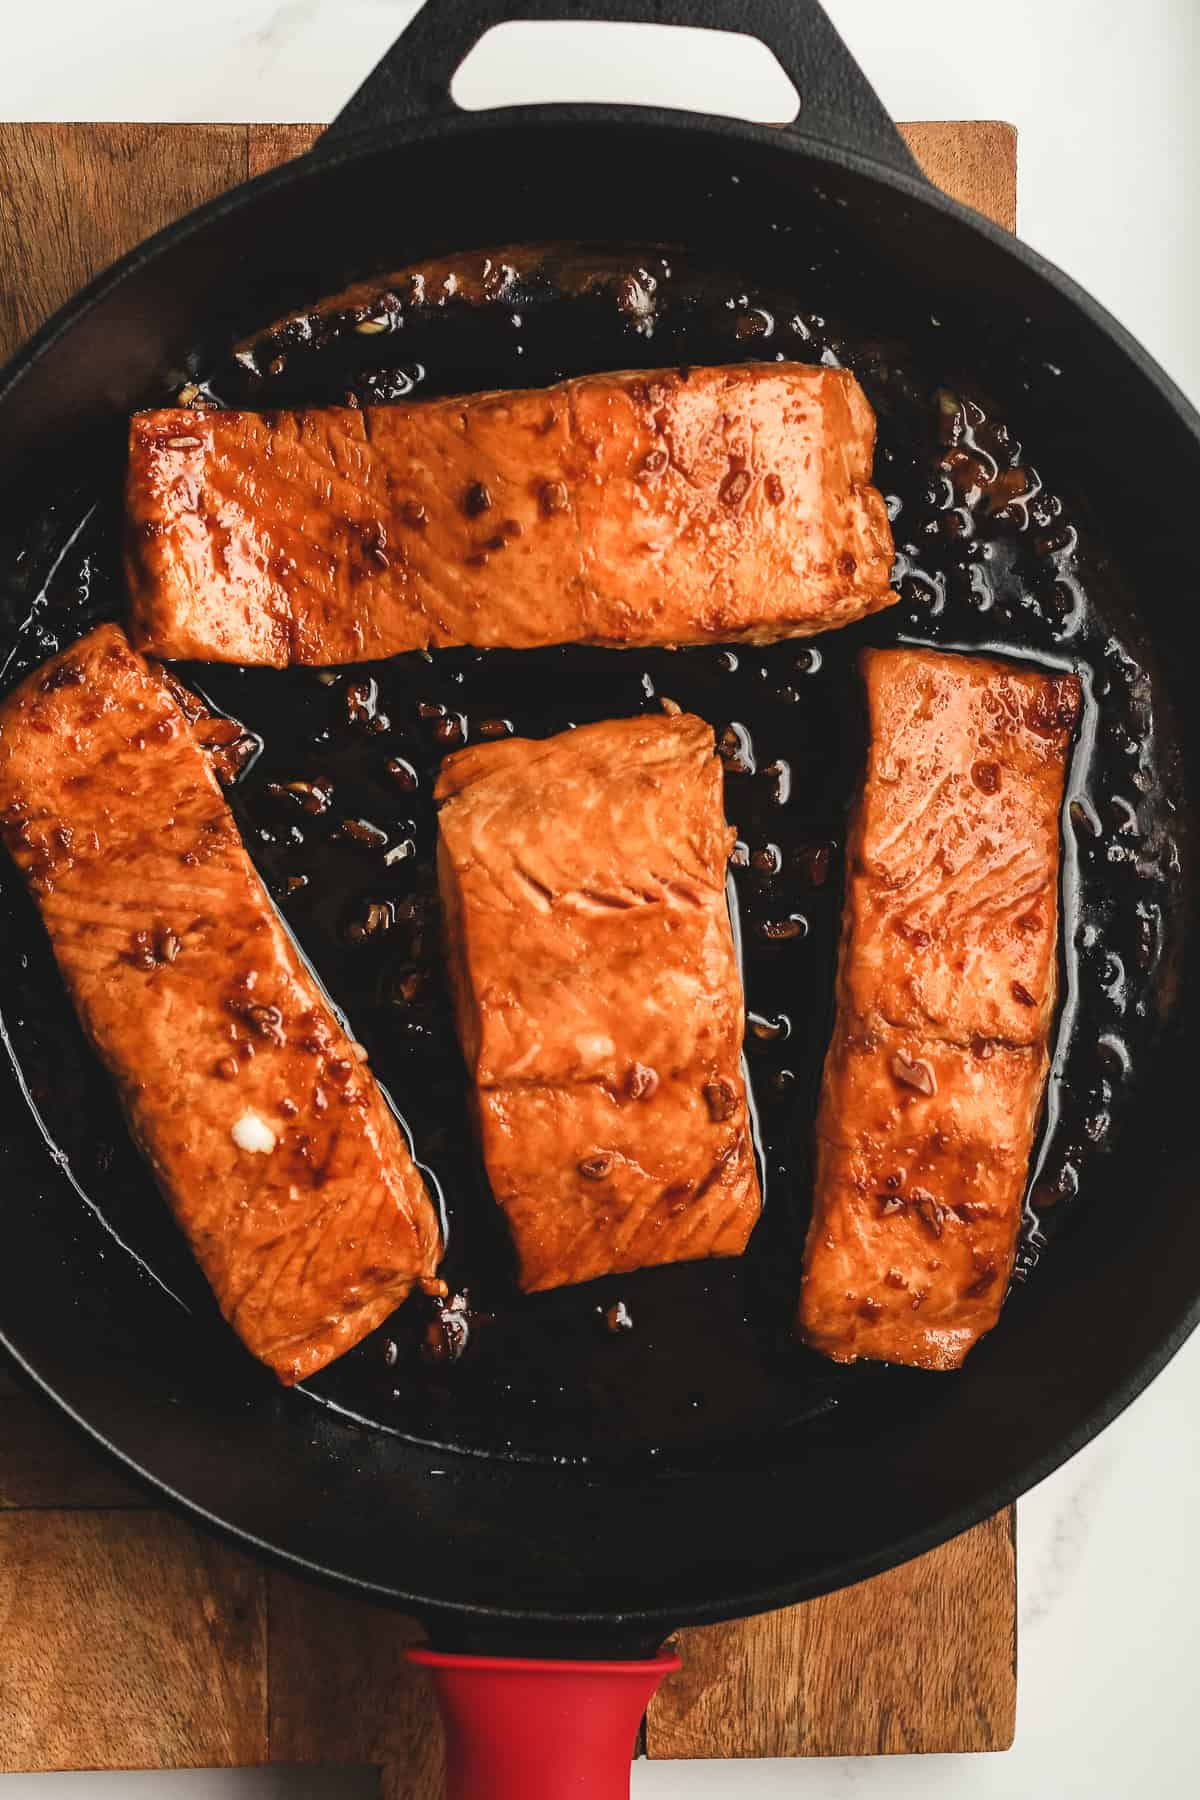 A skillet of cooked salmon.